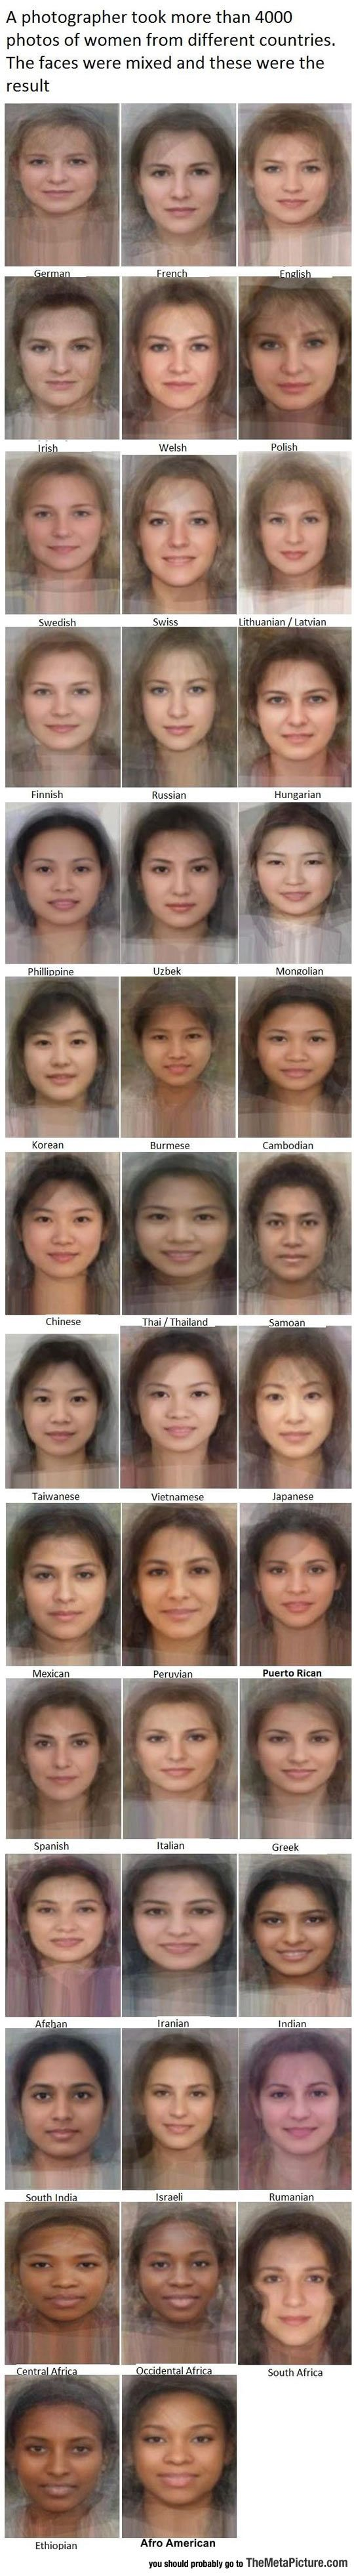 Average Woman From Each Country. They all look so similar. Maybe Eve looked somewhat like a mix of all these. The israeli woman is BEAUTIFUL